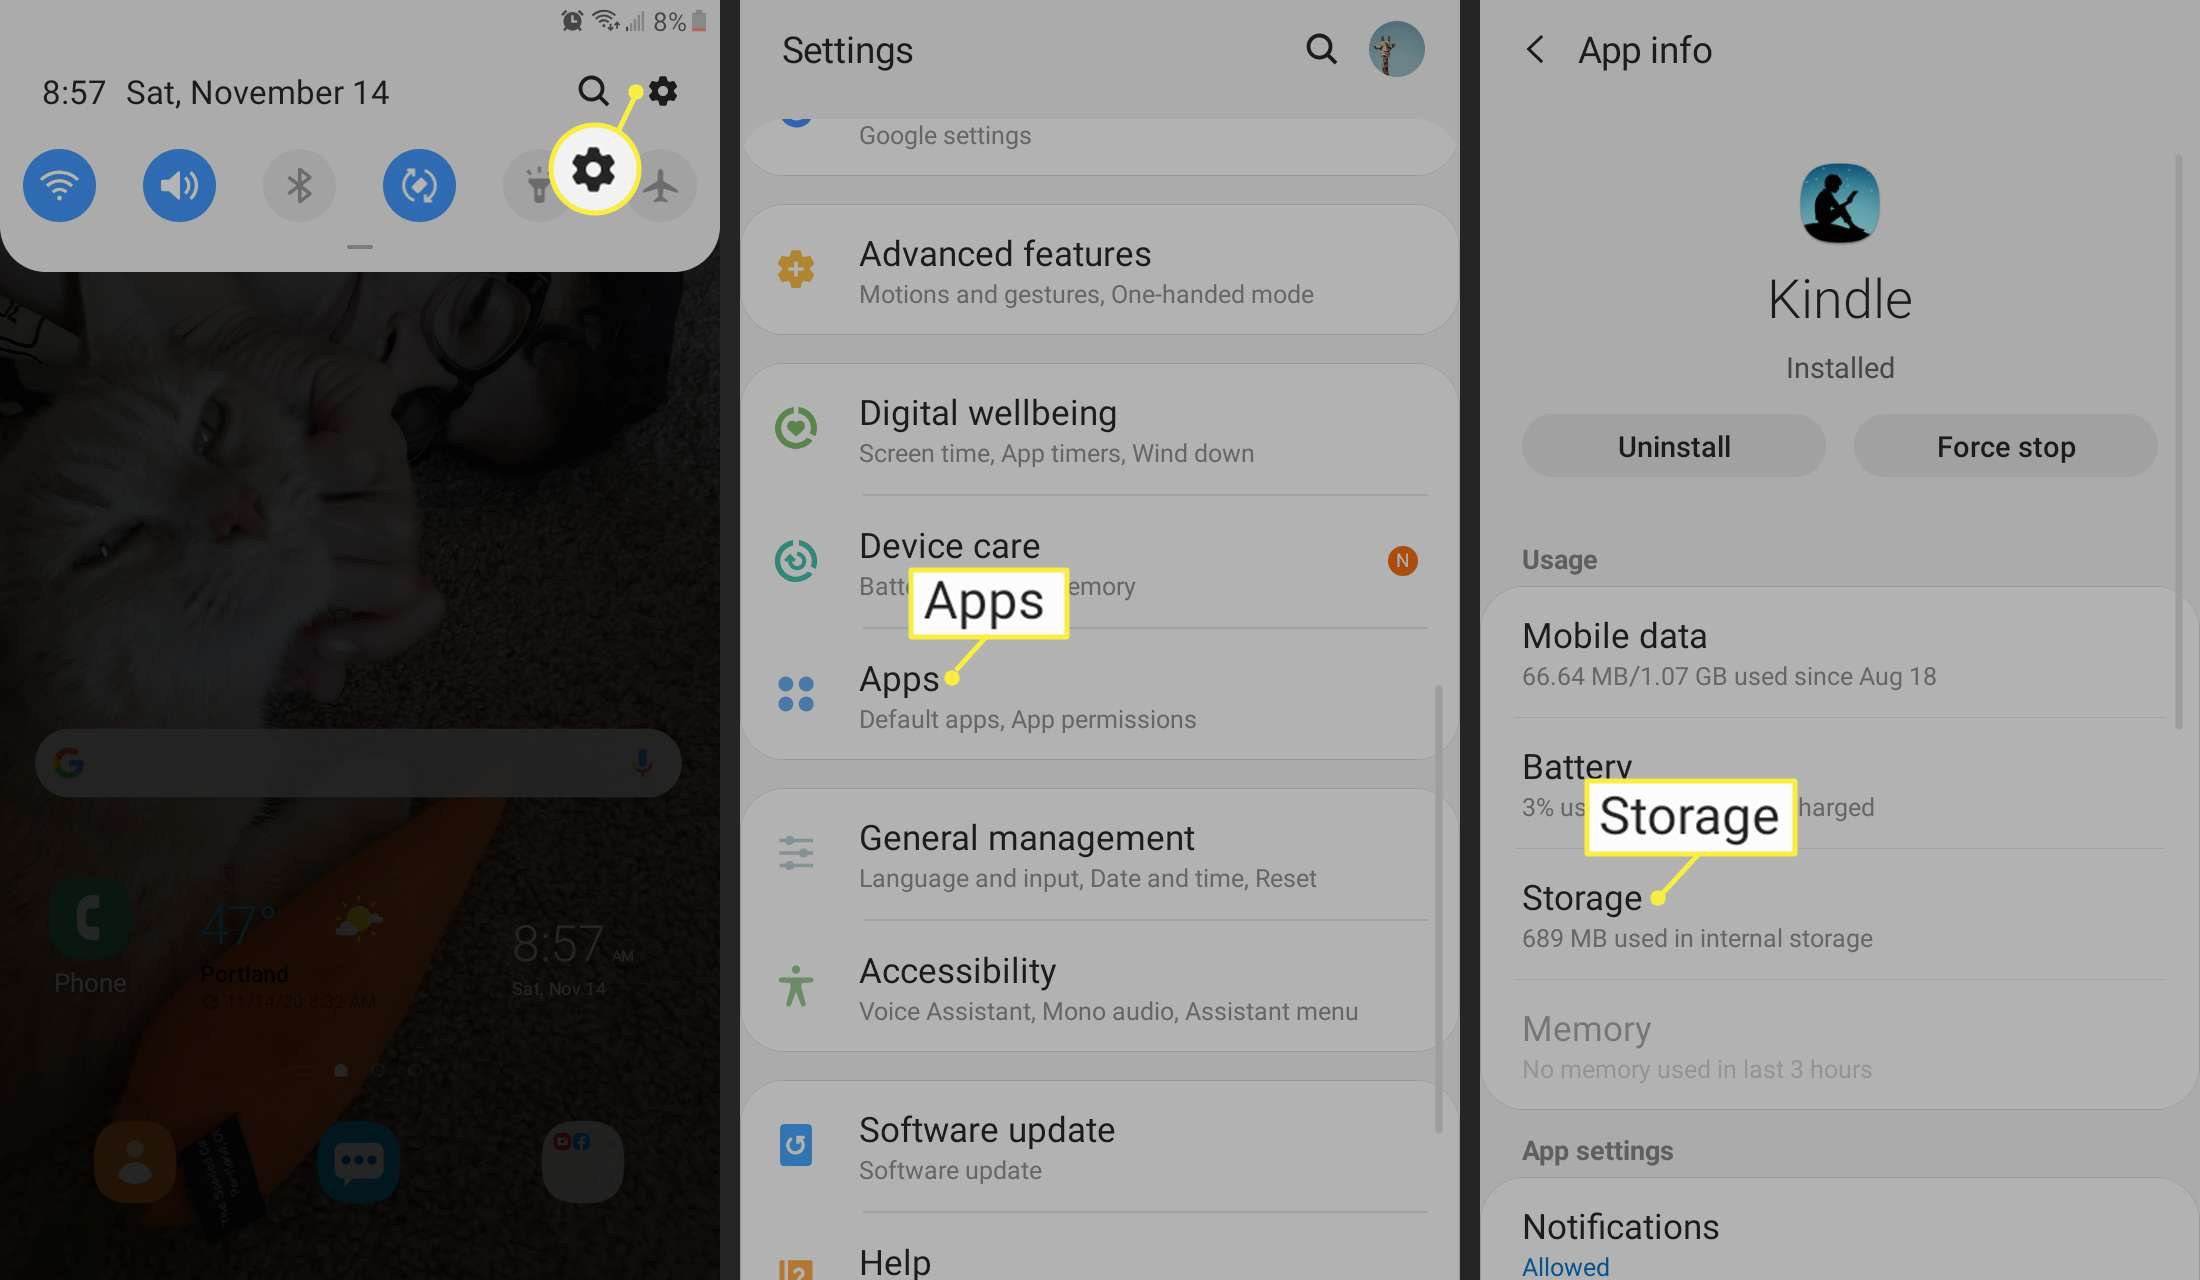 Settings, Apps, and Storage on Android